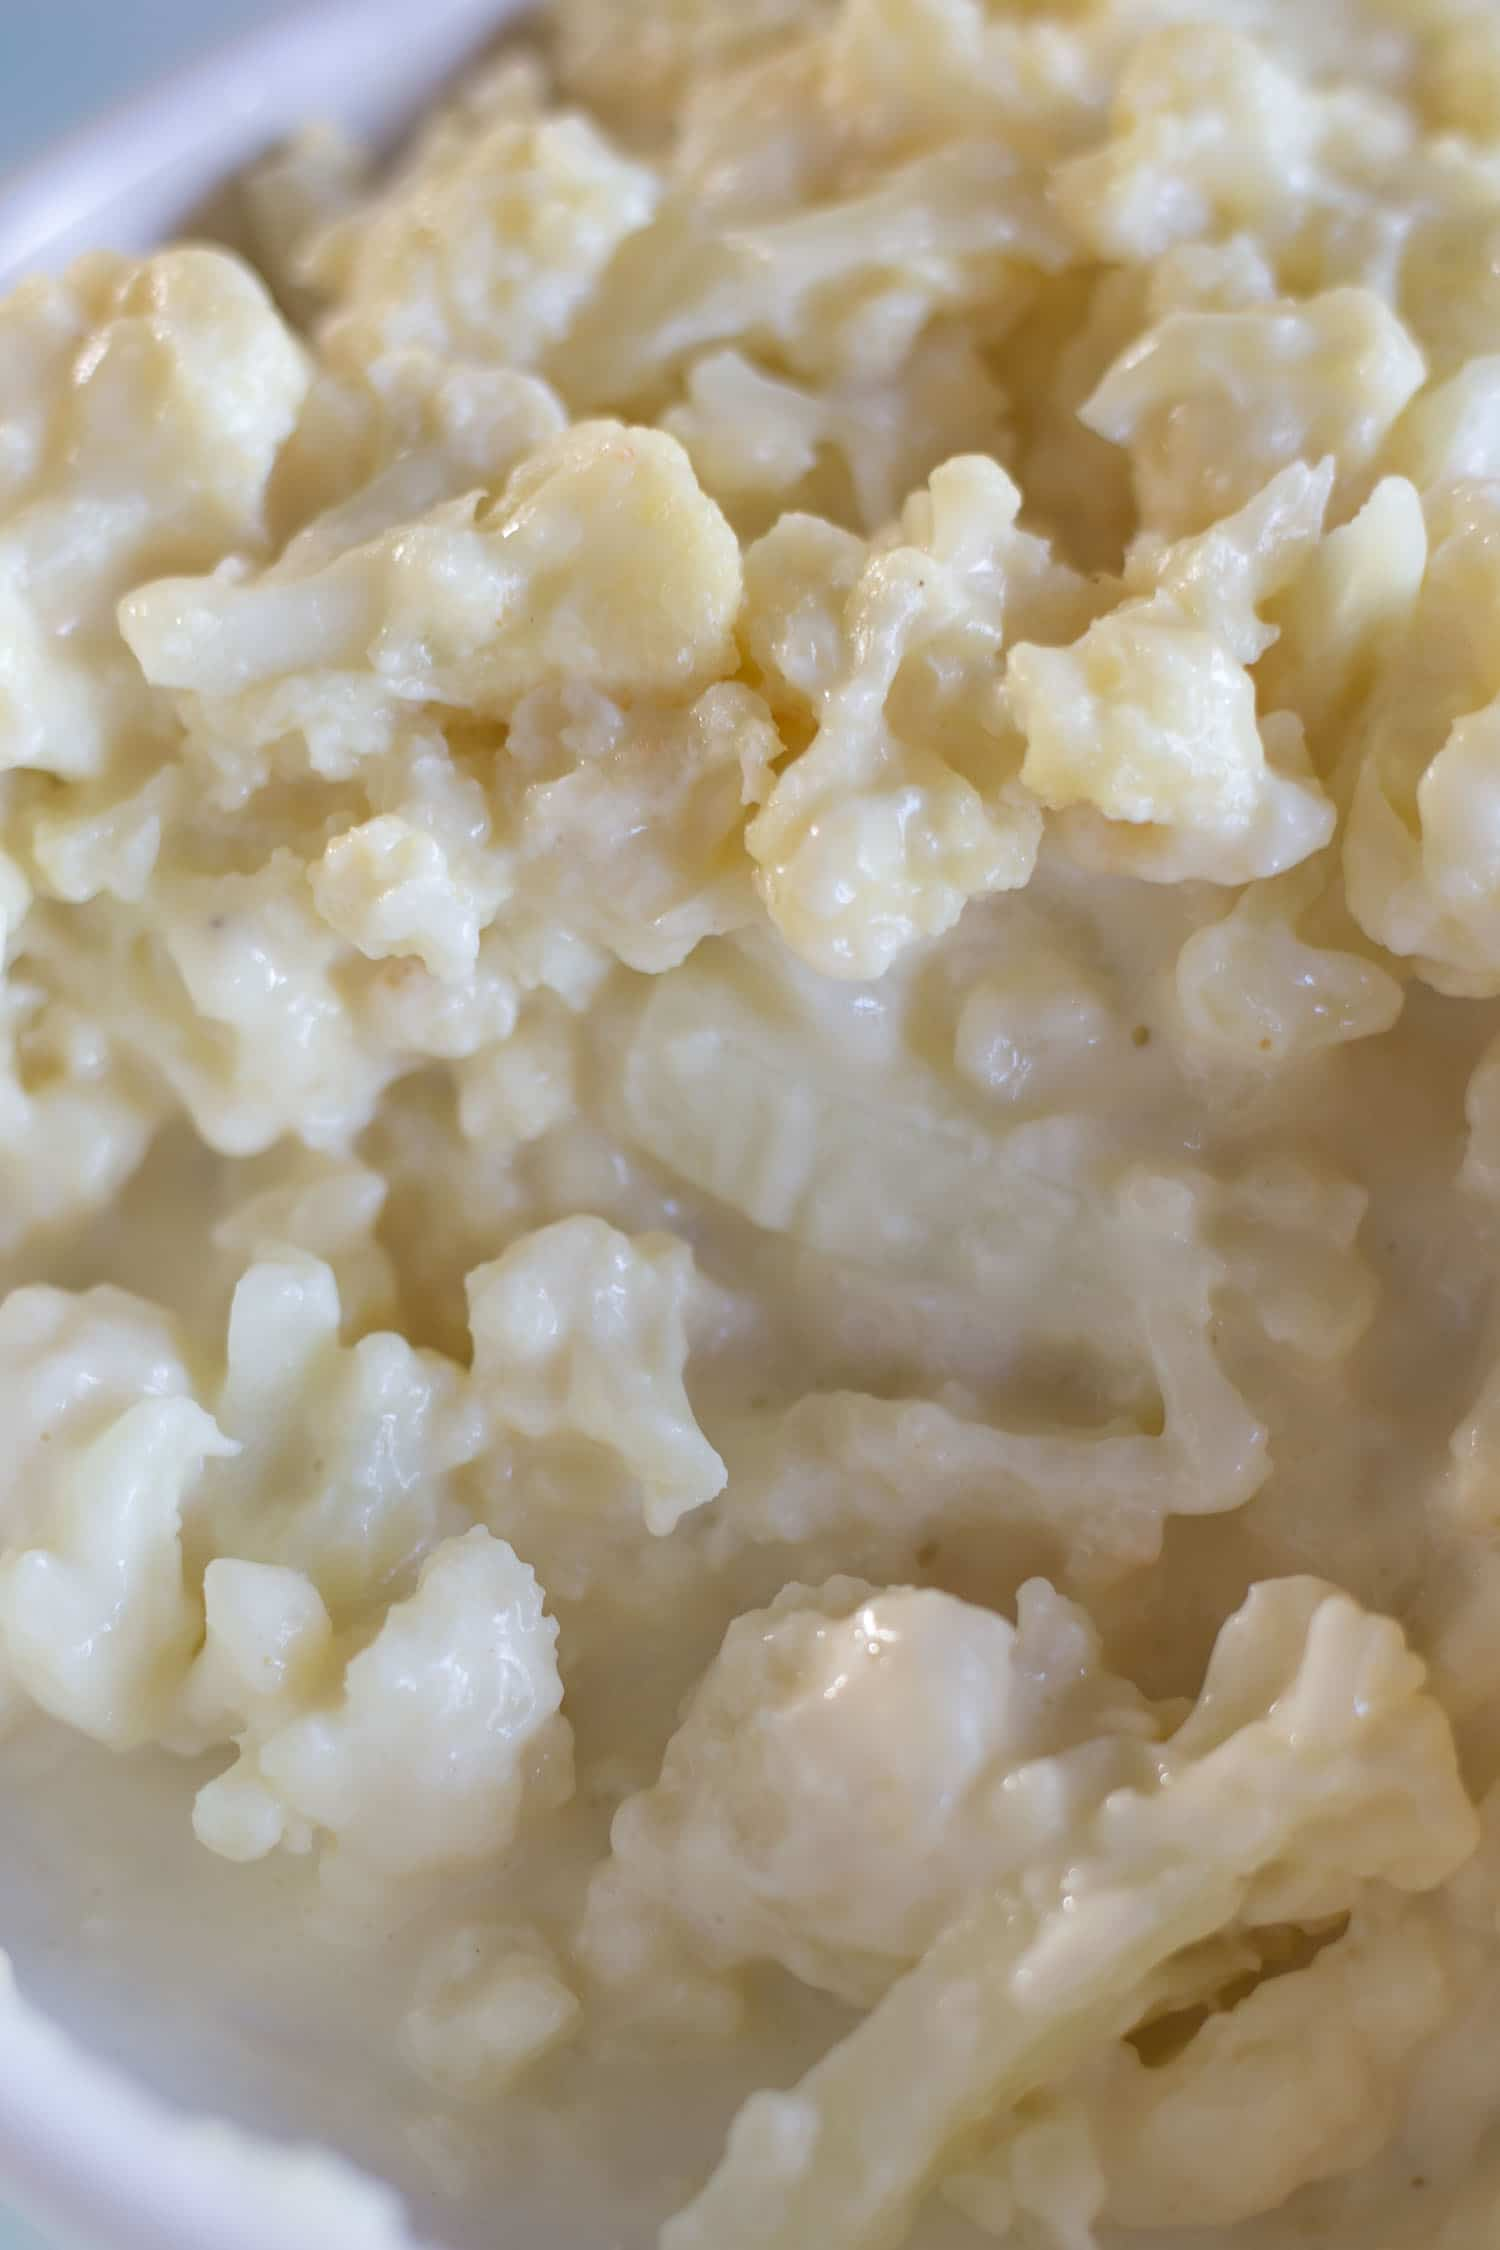 Creamy cauliflower is a tasty substitute for mashed potatoes! |artzyfoodie.com|